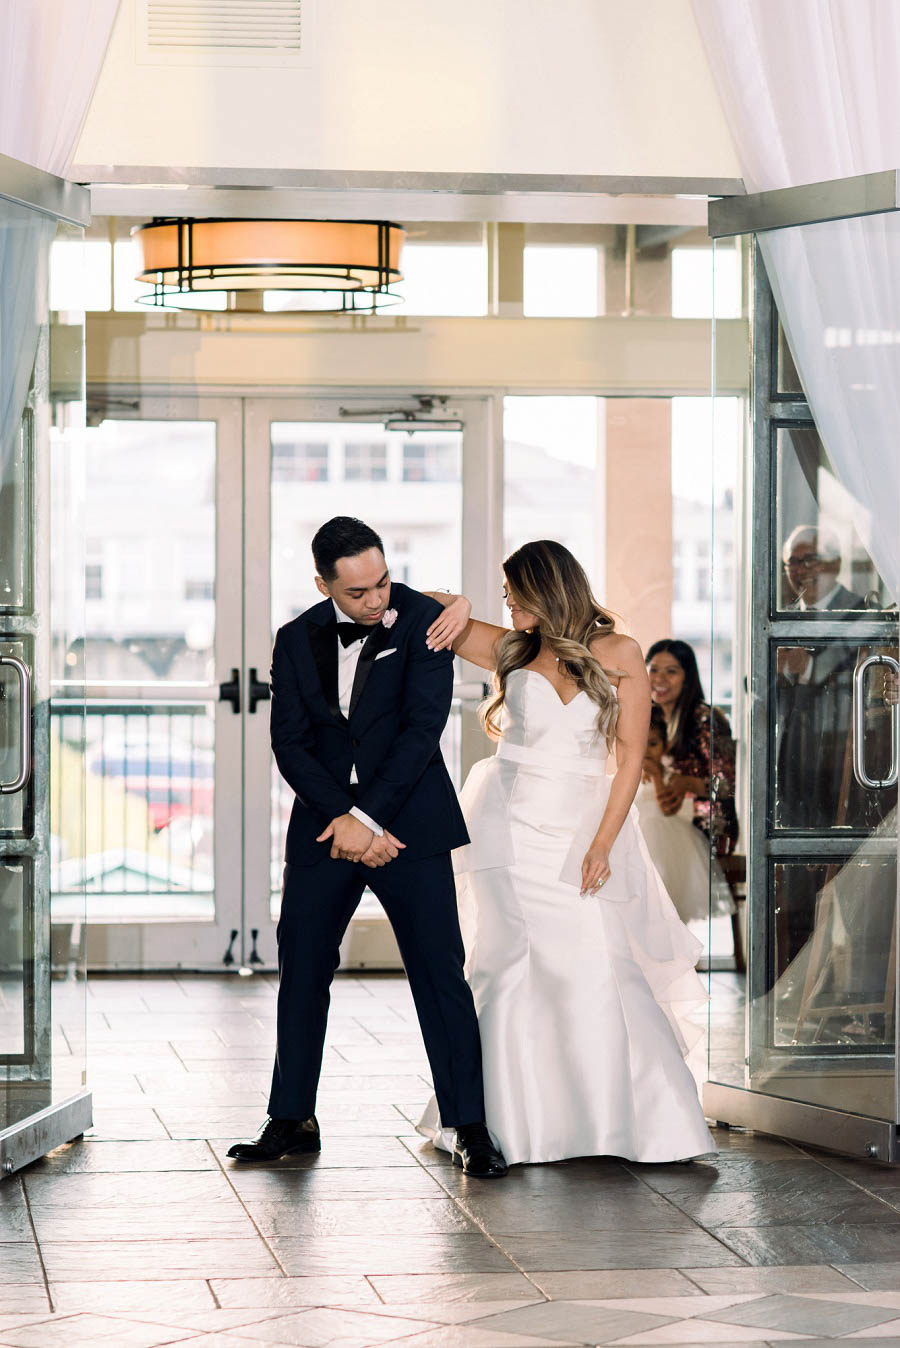 Liberty House Wedding - Jersey City - NJ Wedding Photographer - Myra Roman Photography-65.jpg